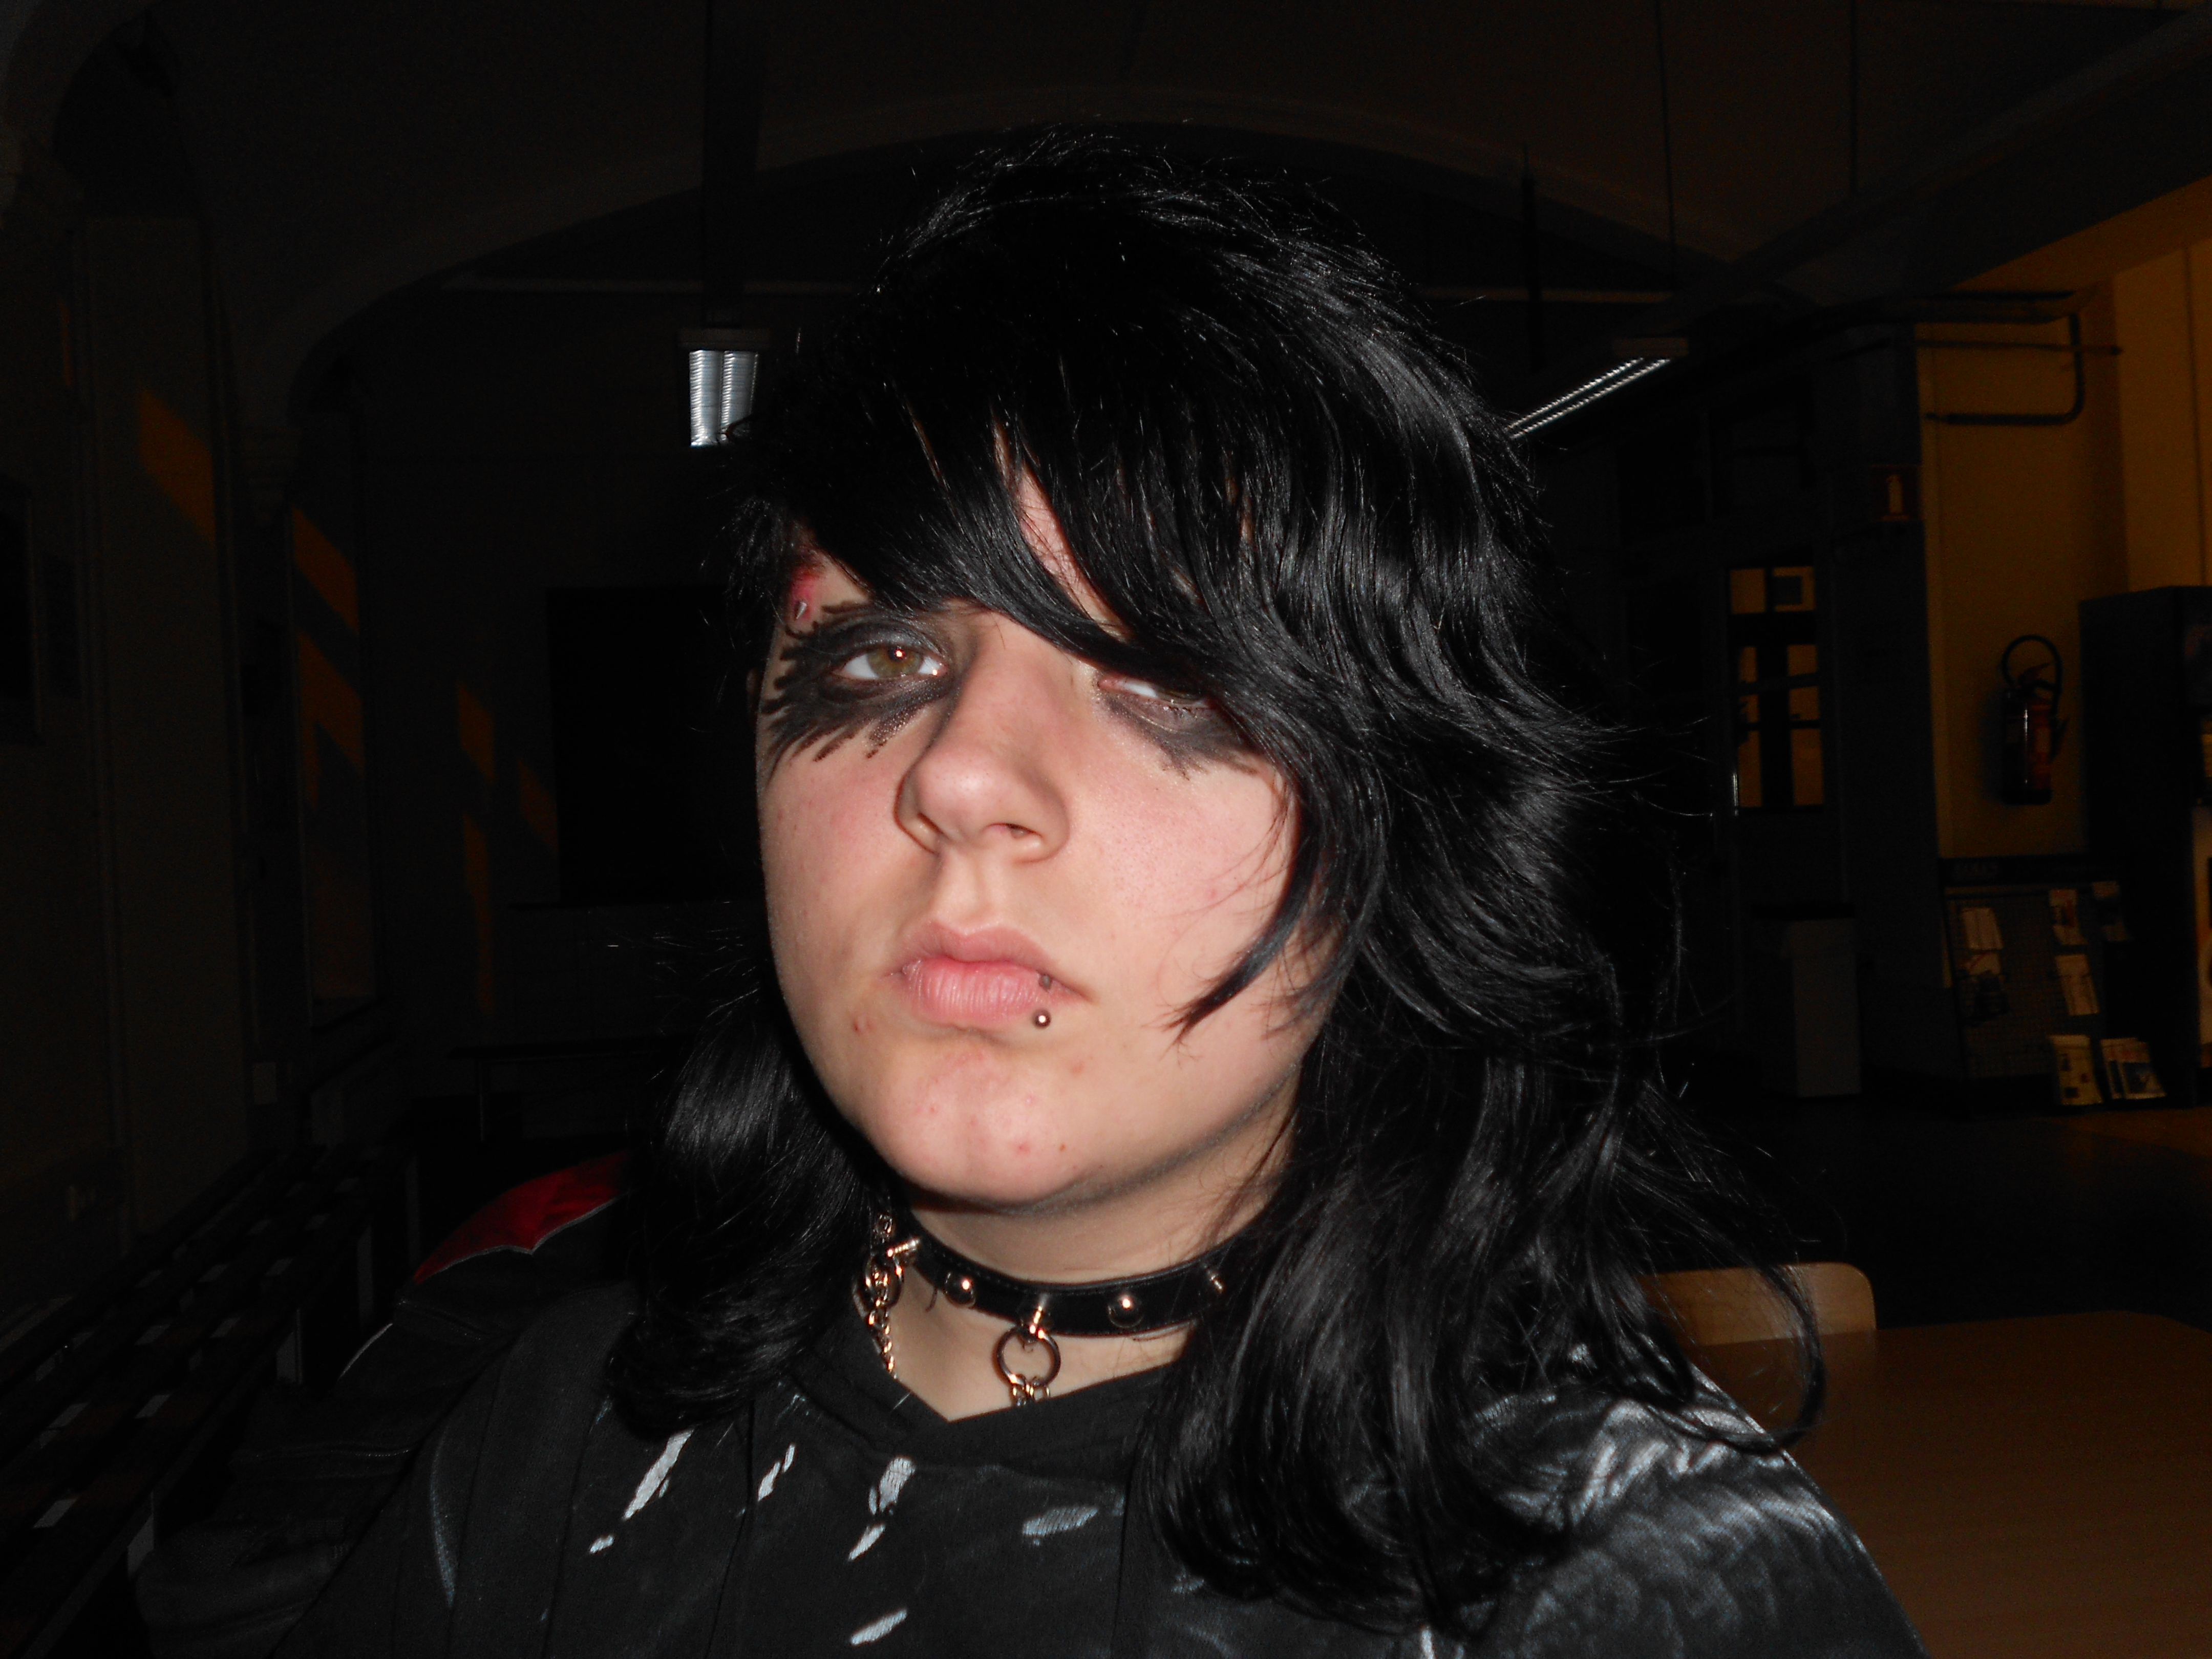 jake pitts without makeup - photo #3